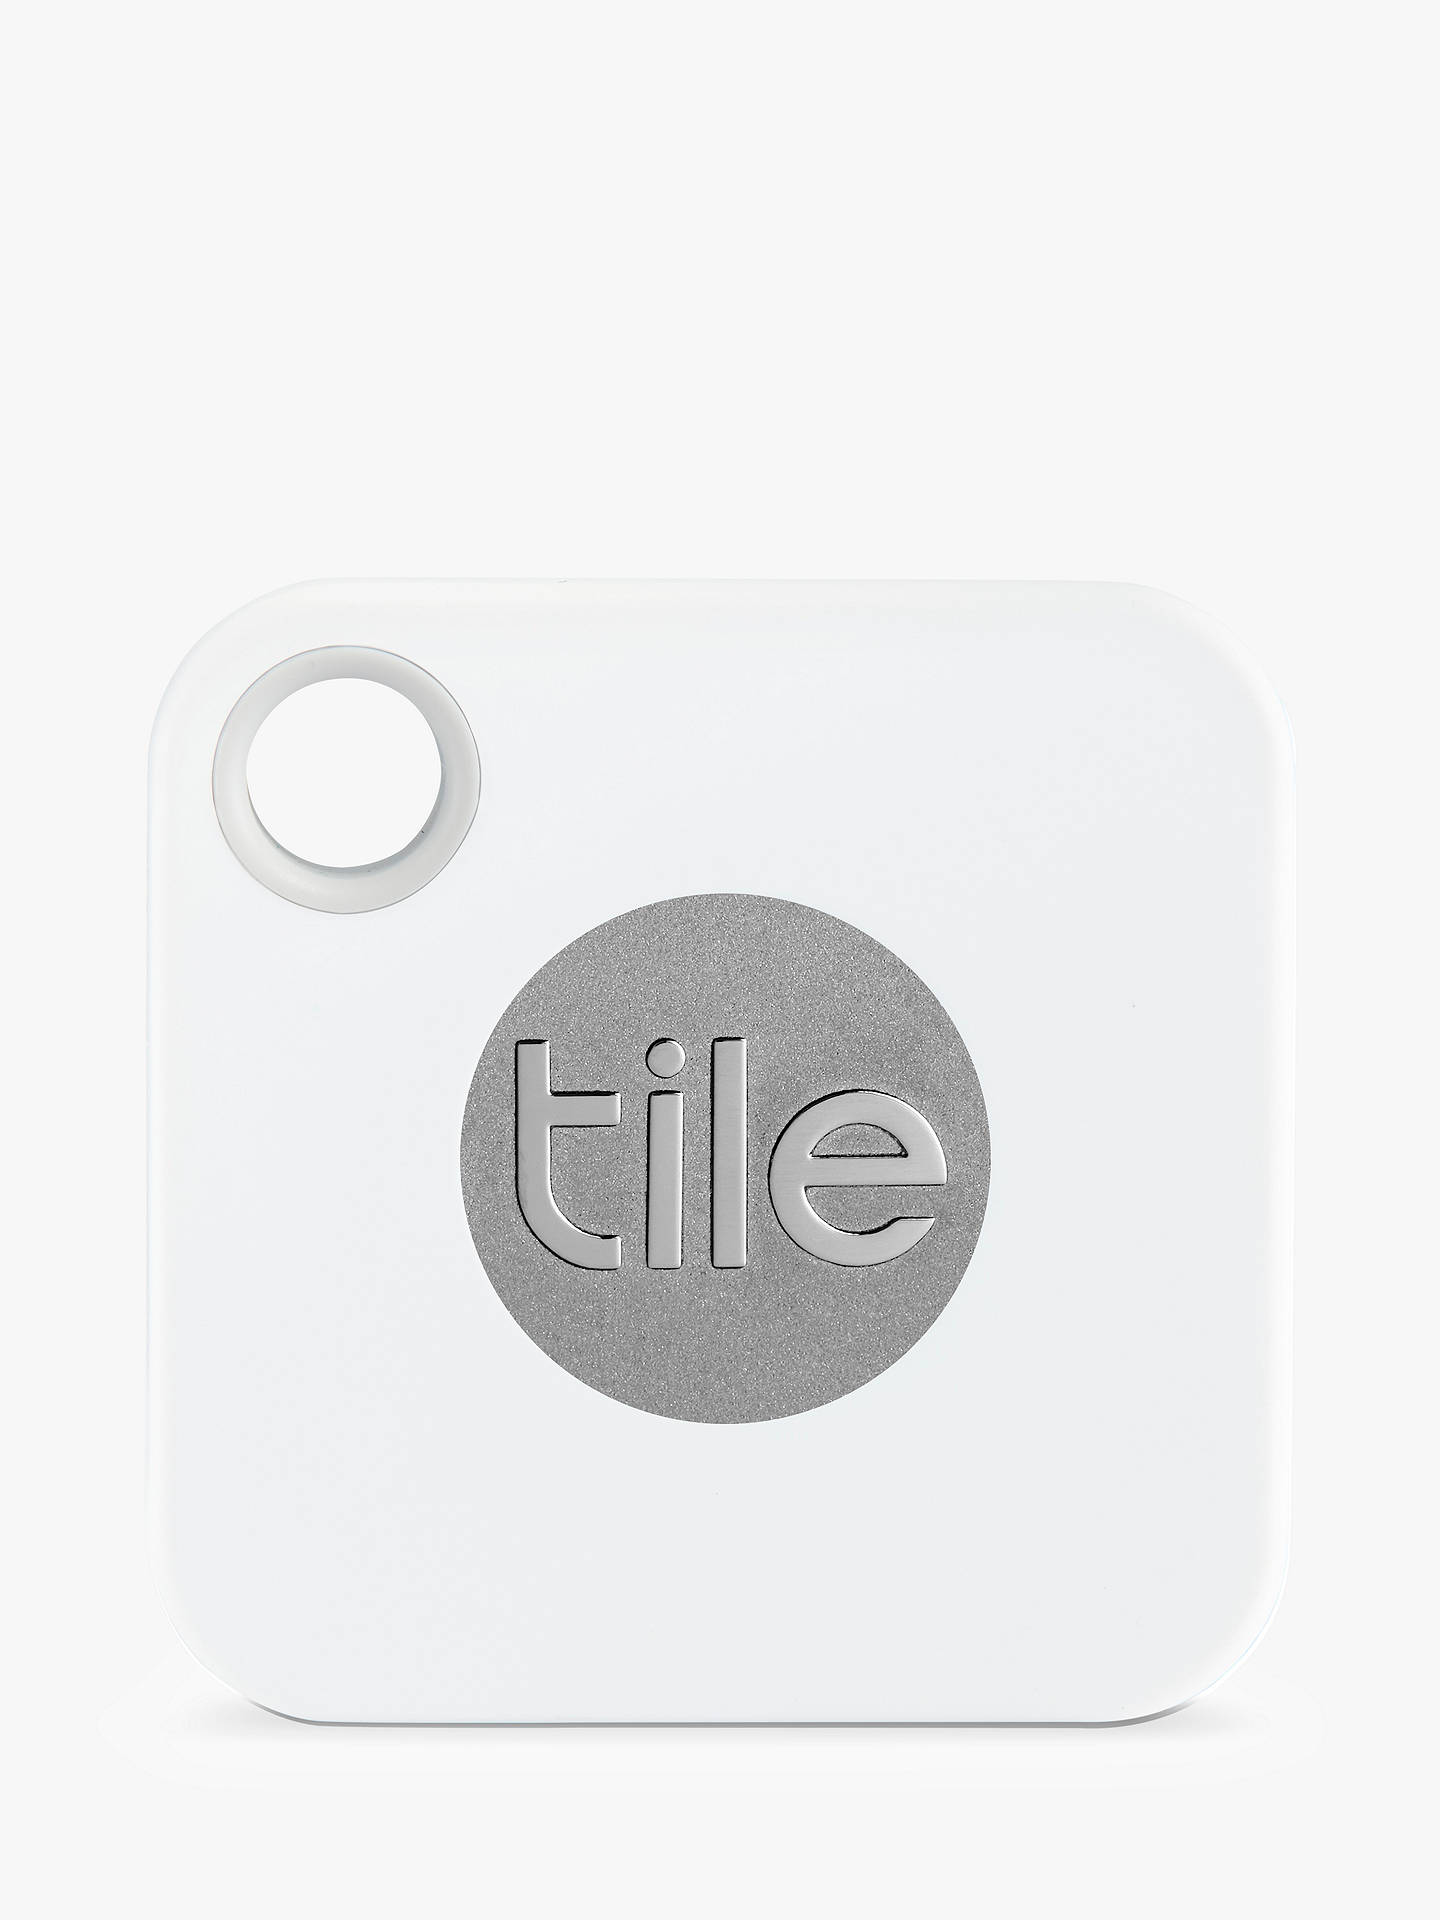 Buy Tile Mate (2018), Bluetooth Phone, Keys, Item Finder, 1 Pack Online at johnlewis.com